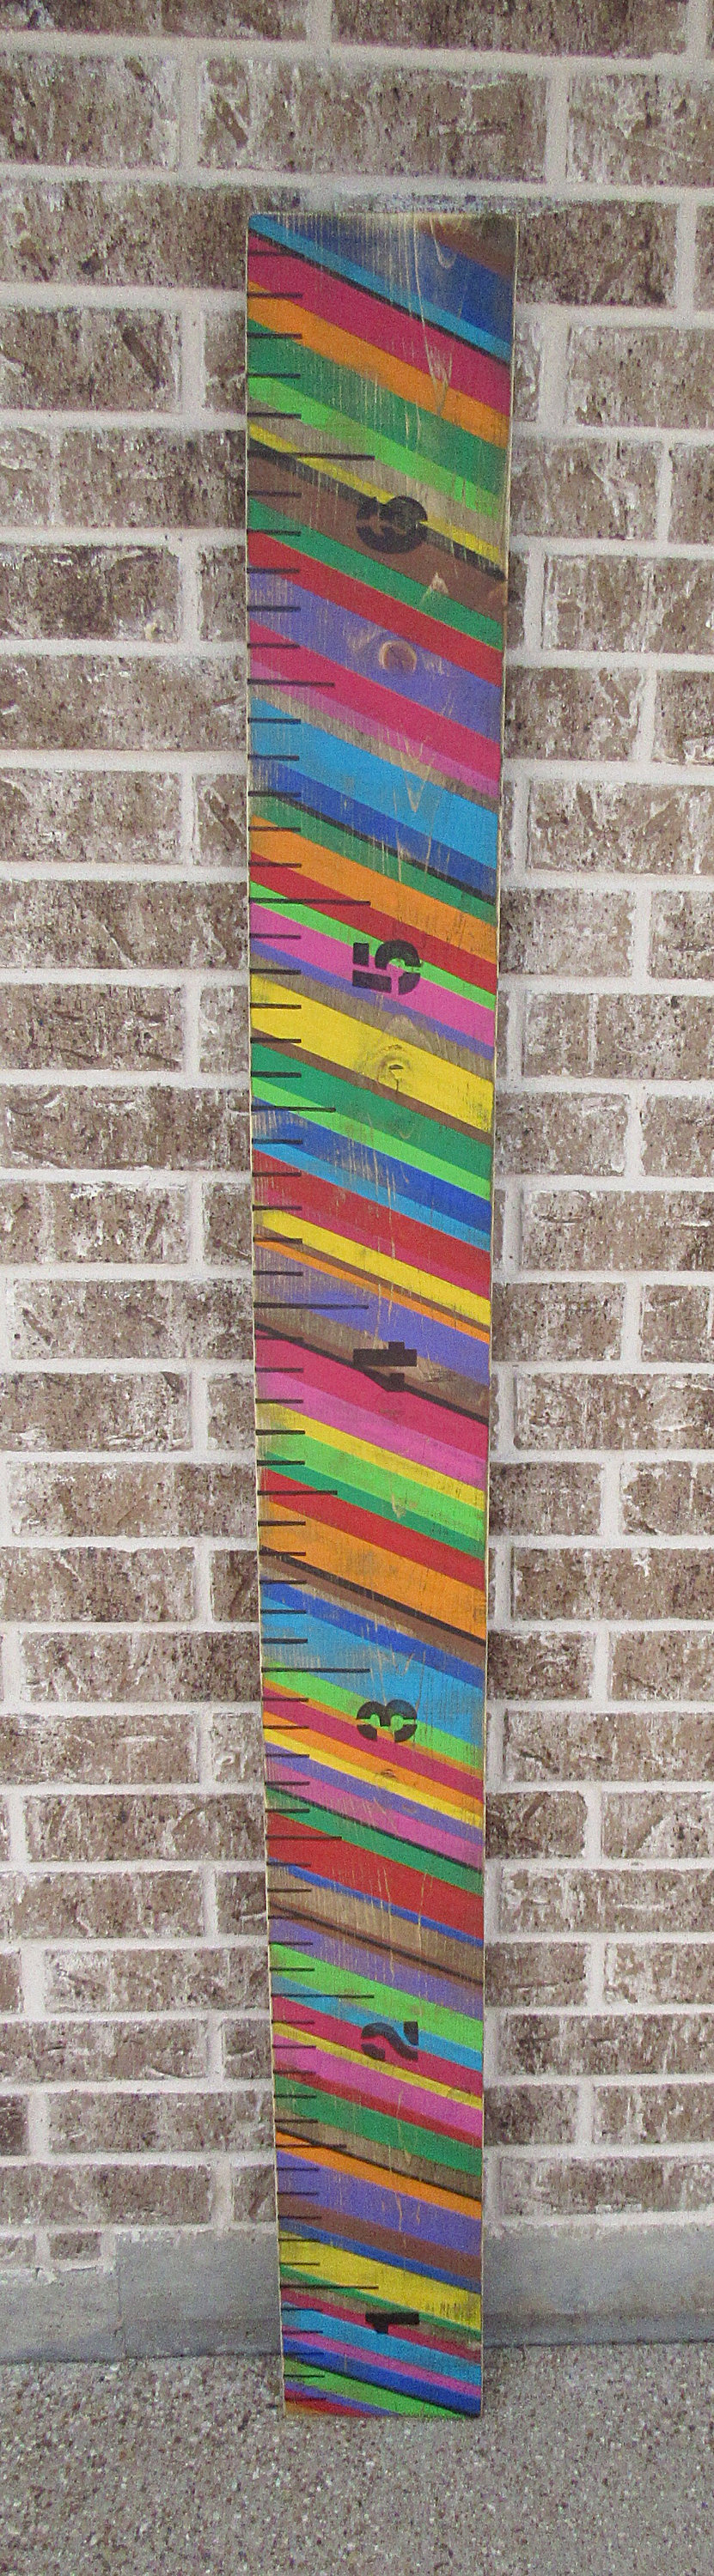 Serape inspired growth chart growth chart baby shower gift nursery serape inspired growth chart growth chart baby shower gift by sweetsandcheeks on etsy geenschuldenfo Choice Image